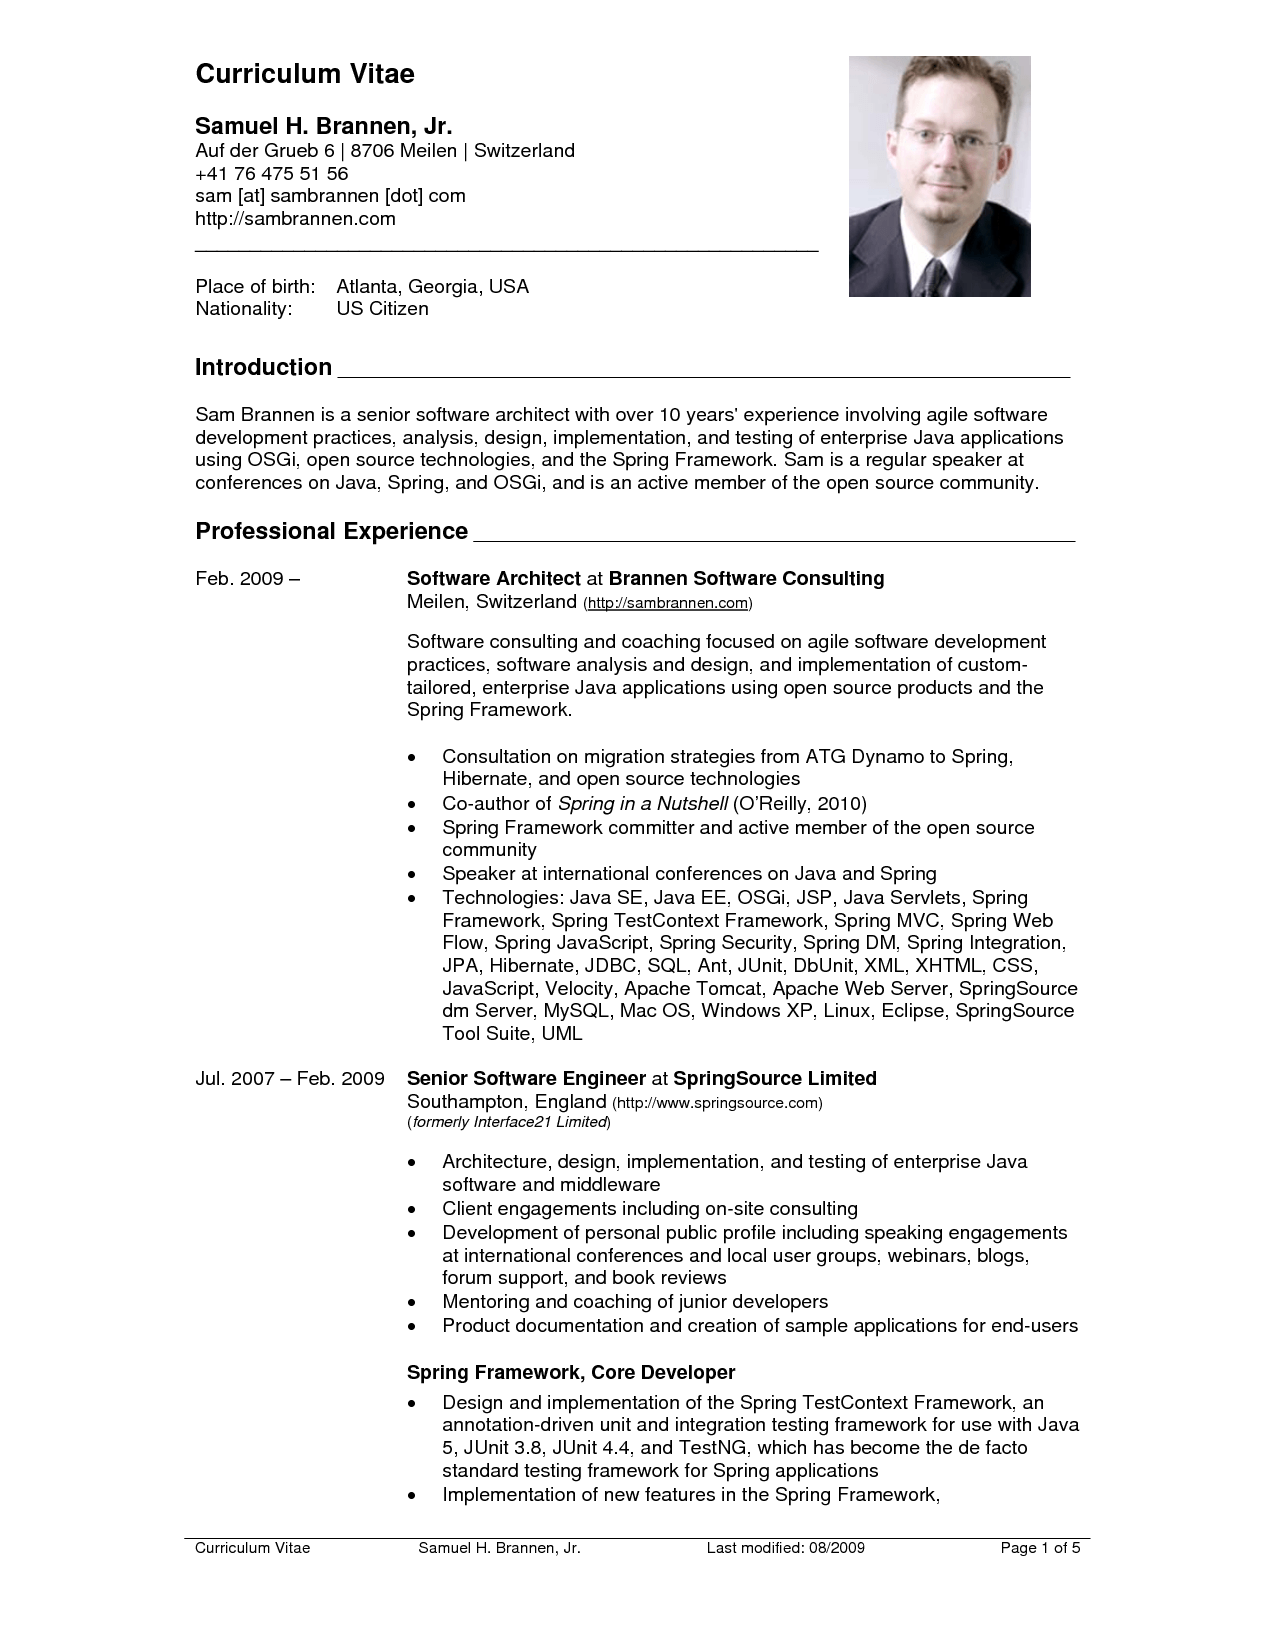 an example of curriculum vitae Curriculum vitae examples and writing tips, including cv samples, templates, and advice for us and international job seekers.